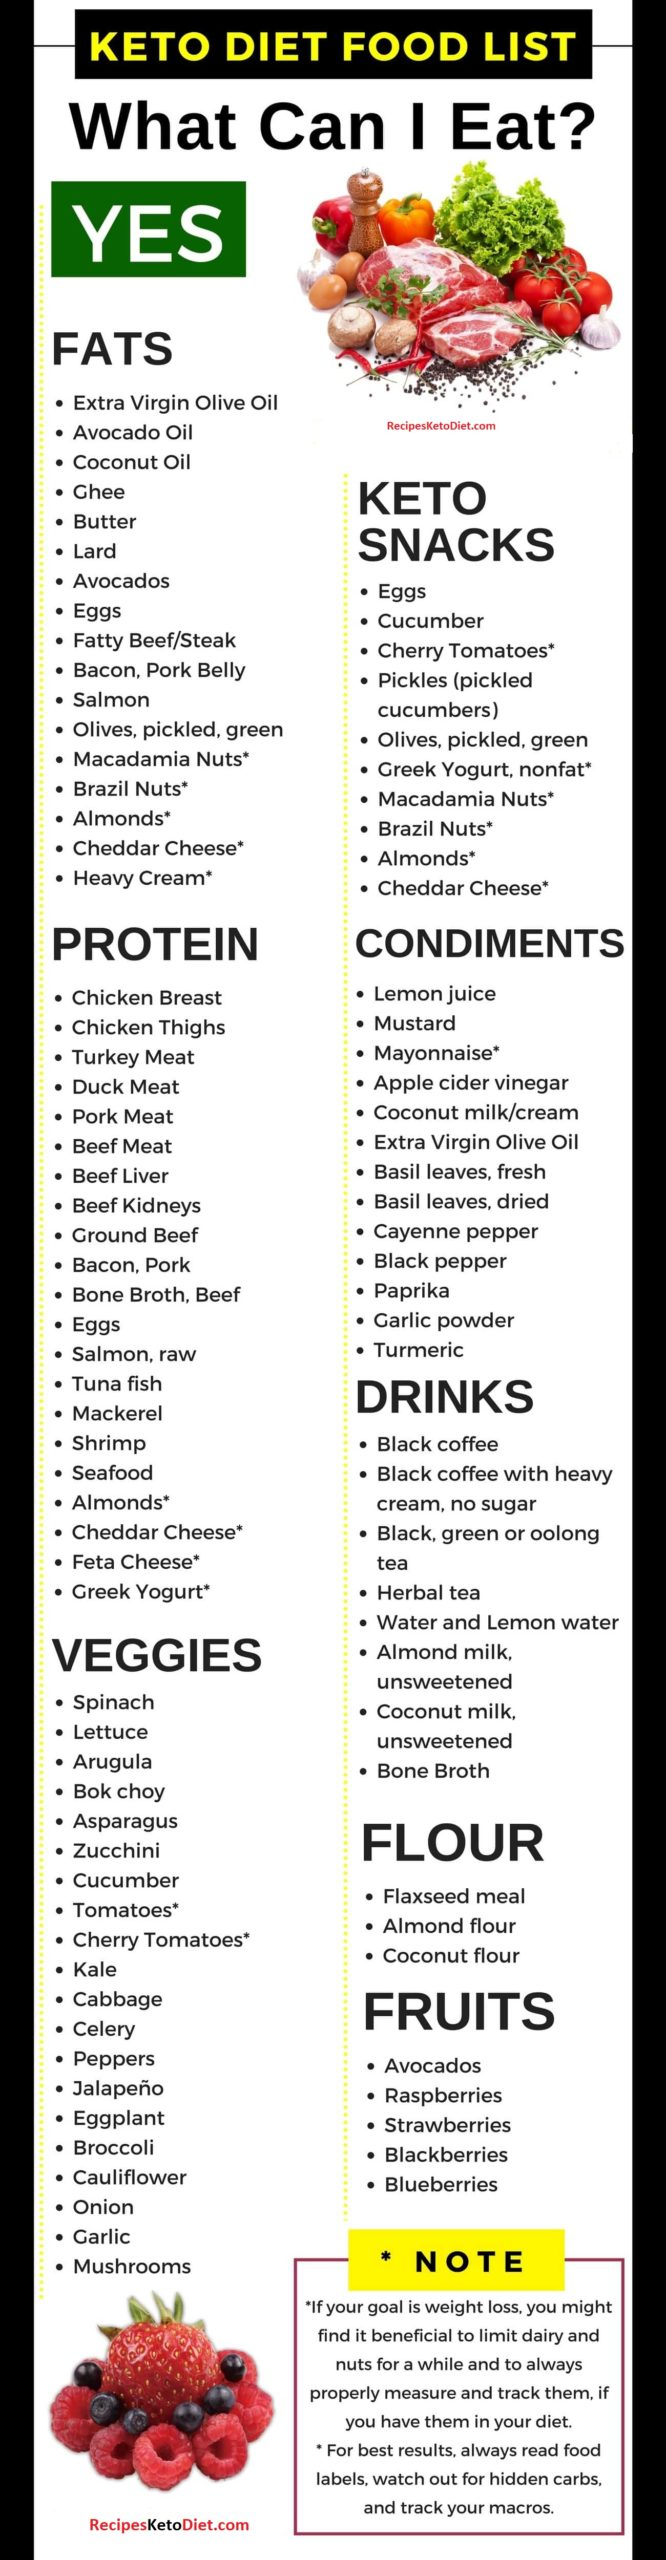 The Complete Keto Diet Food List What To Eat And Avoid Recipes Keto Diet